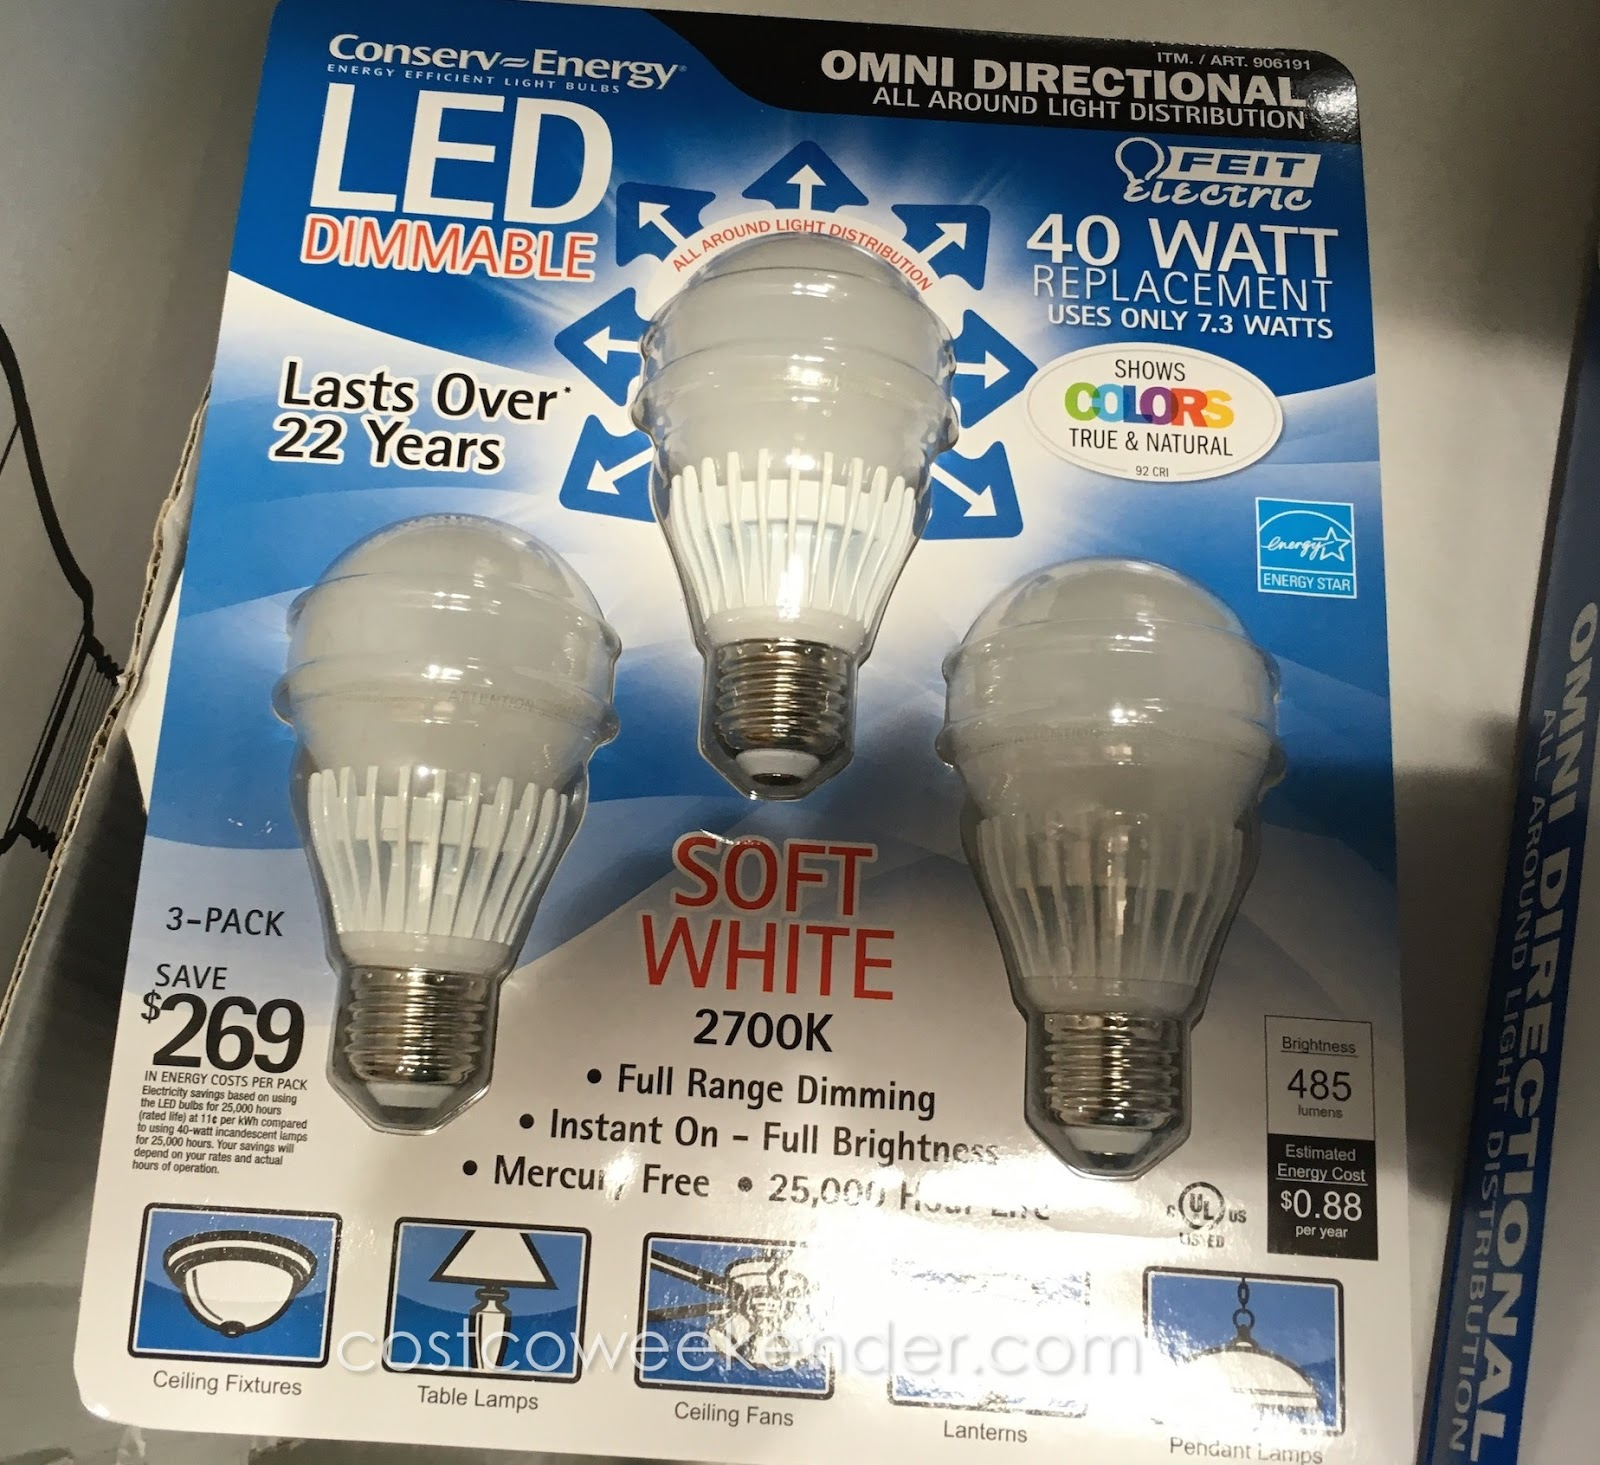 View Colors As They Really Are With The Feit Electric 40 Watt LED Dimmable Replacement  Bulbs Photo